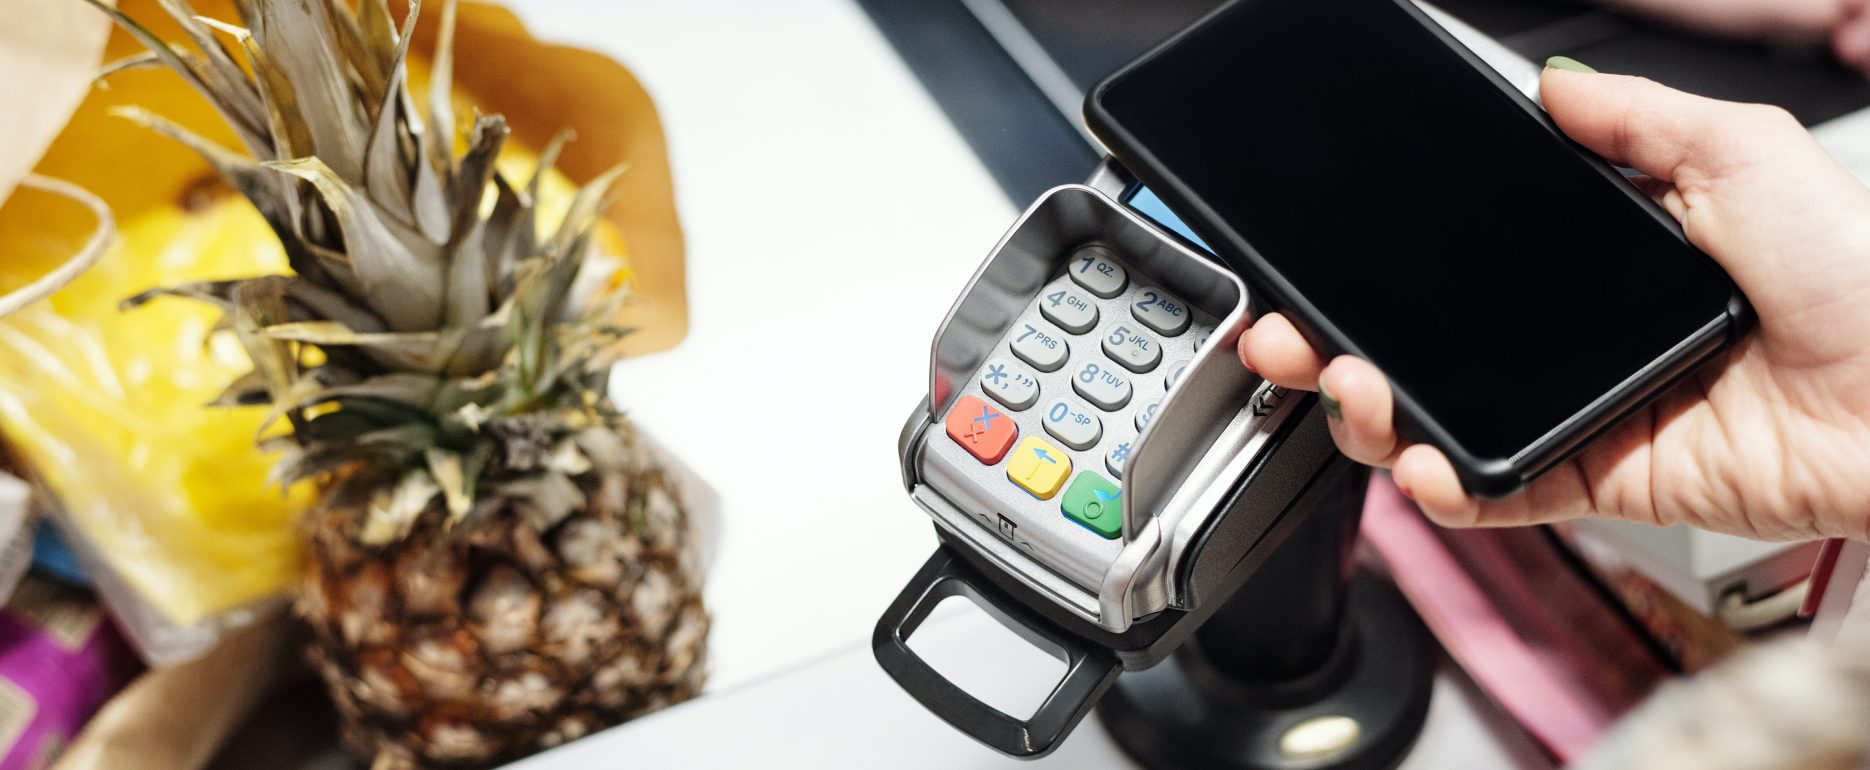 Payment technology trends